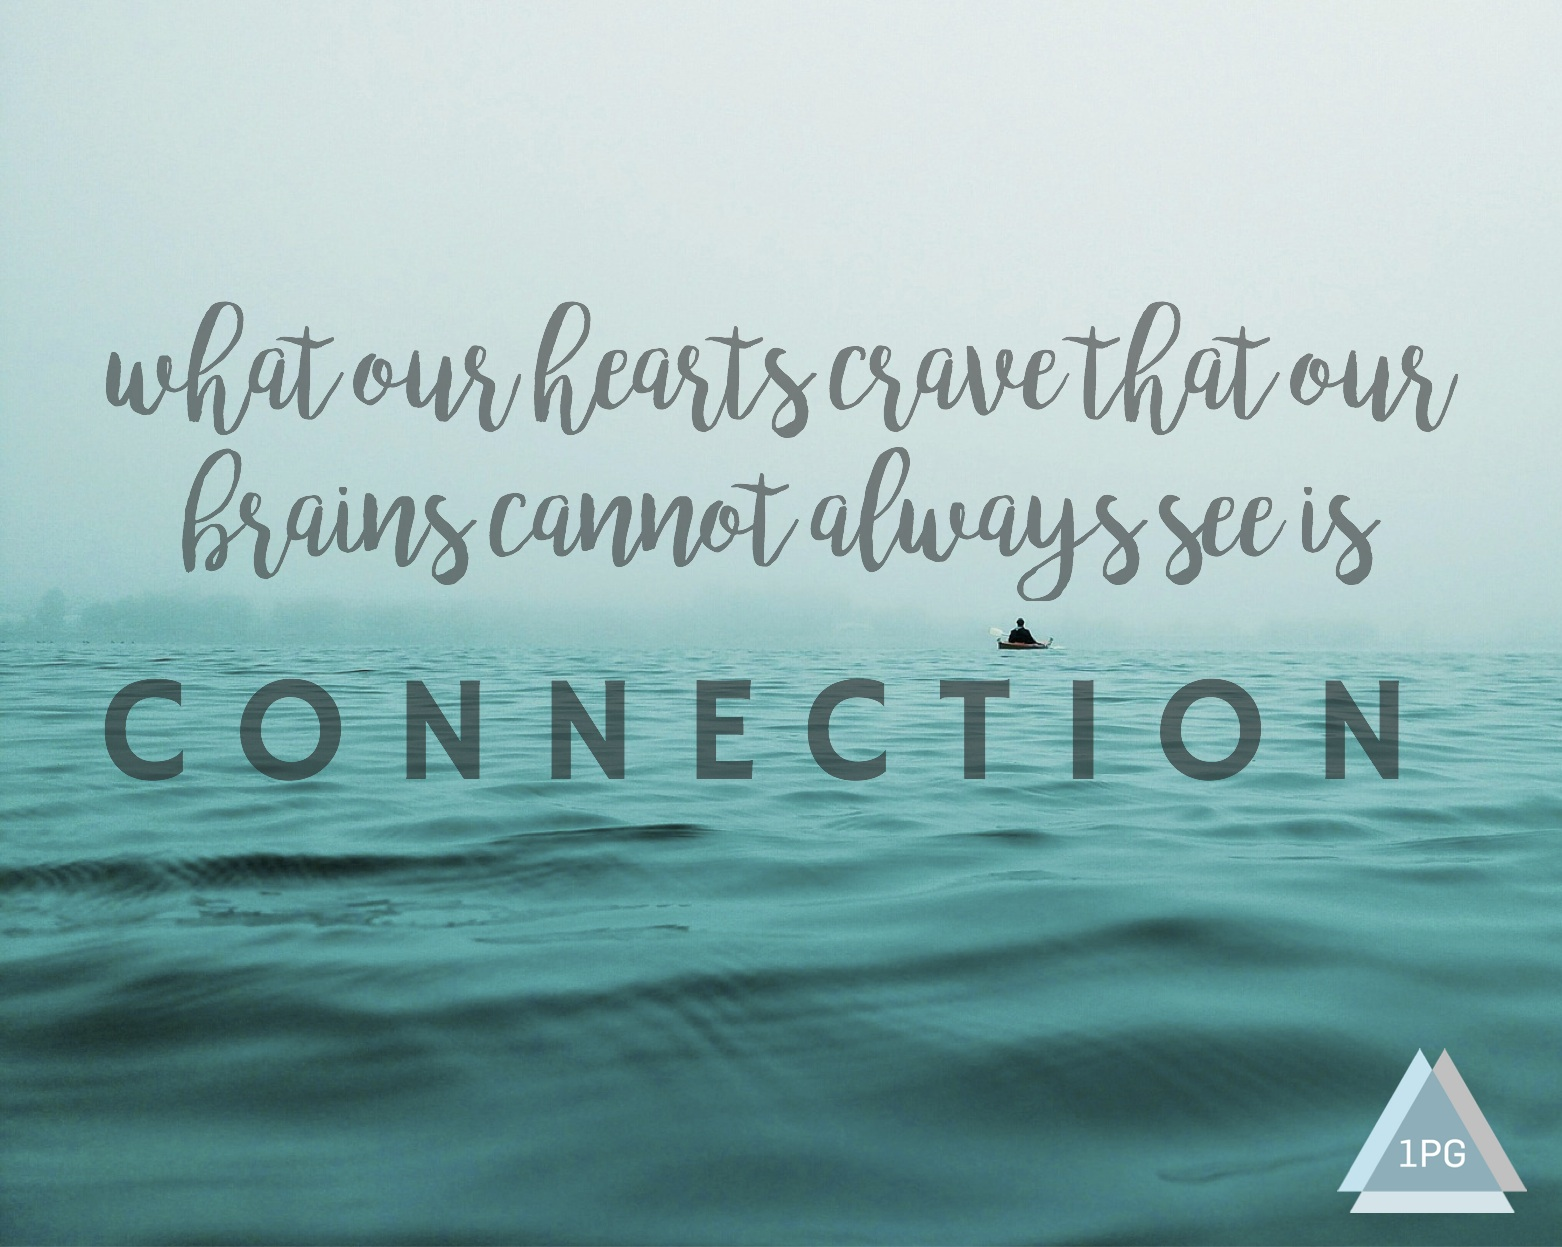 what our hearts crave that our brains cannot always see is connection